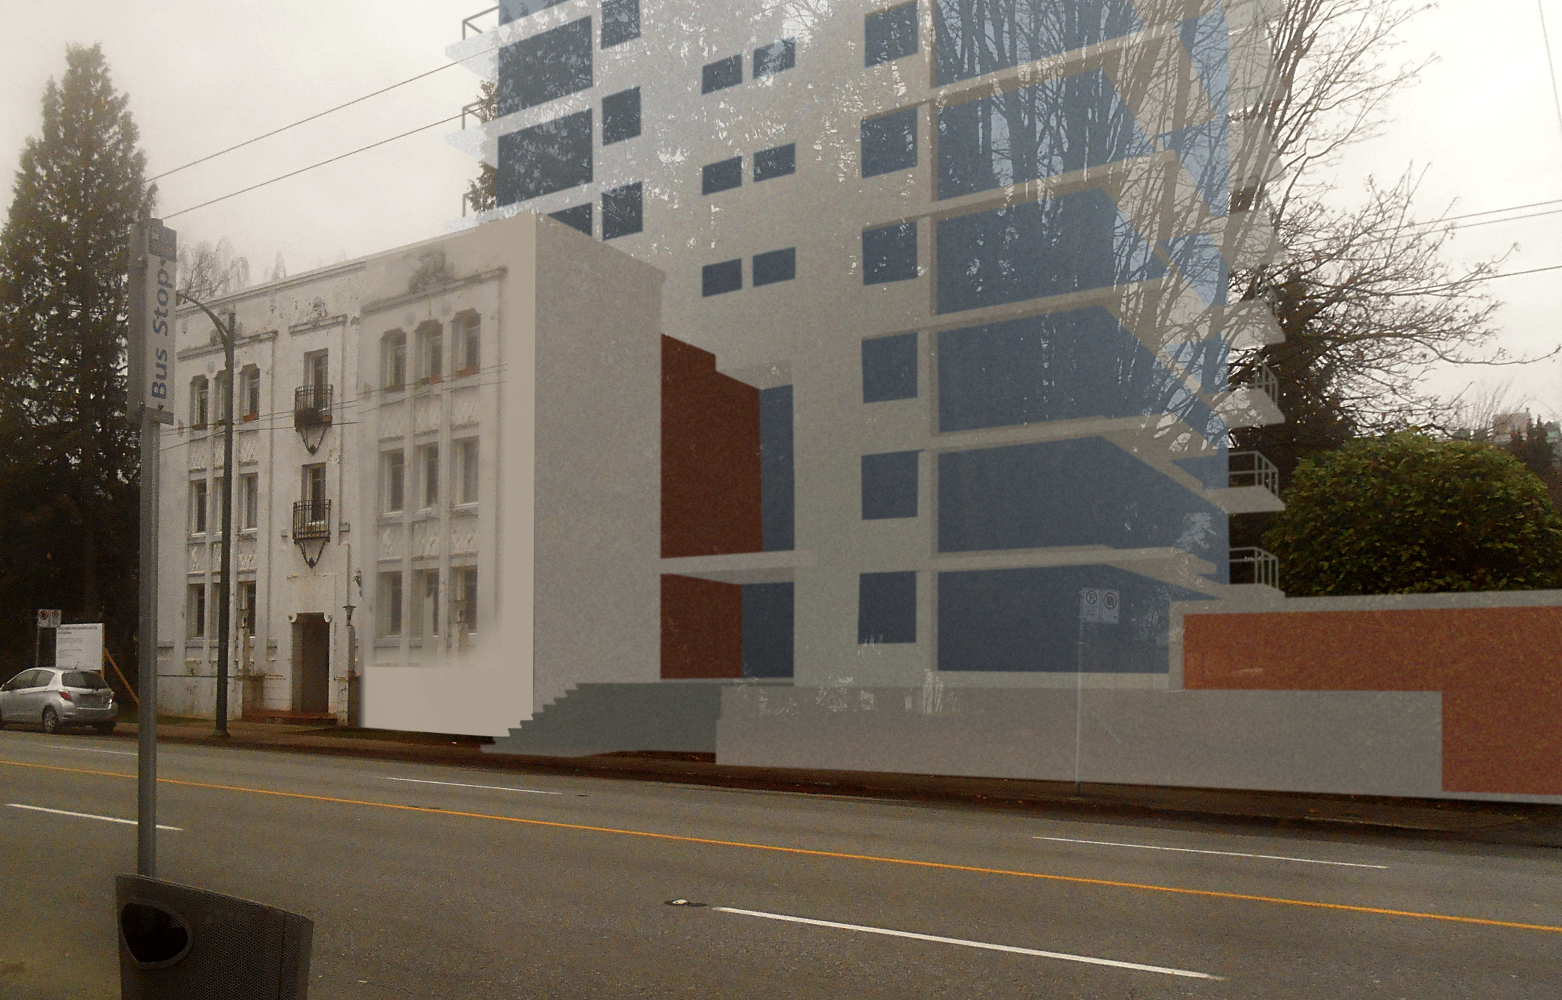 Putting up a good facade in Vancouver | sqwabb